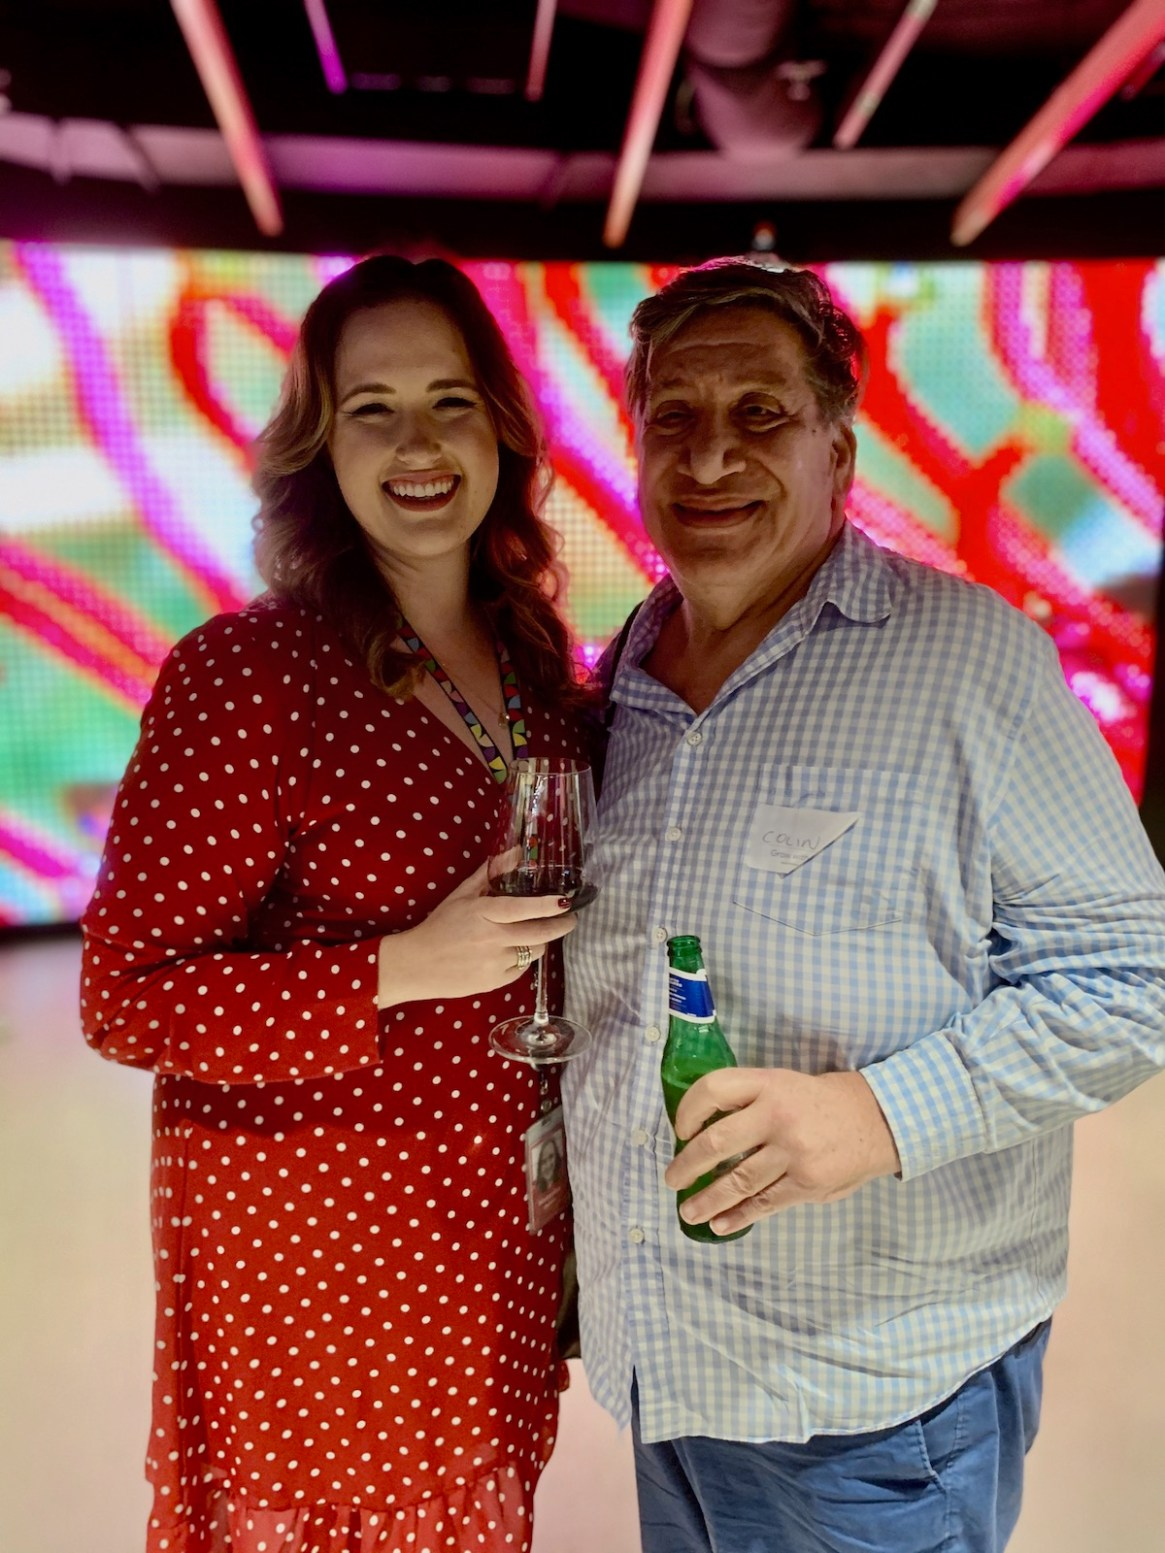 (L-R) Natasha Badrov - Googler & past SGLBA Board Member and Colin Paull owner of Belloccio Restaurant on Oxford Street and the 2019 Honour Awards Business Category Winner.